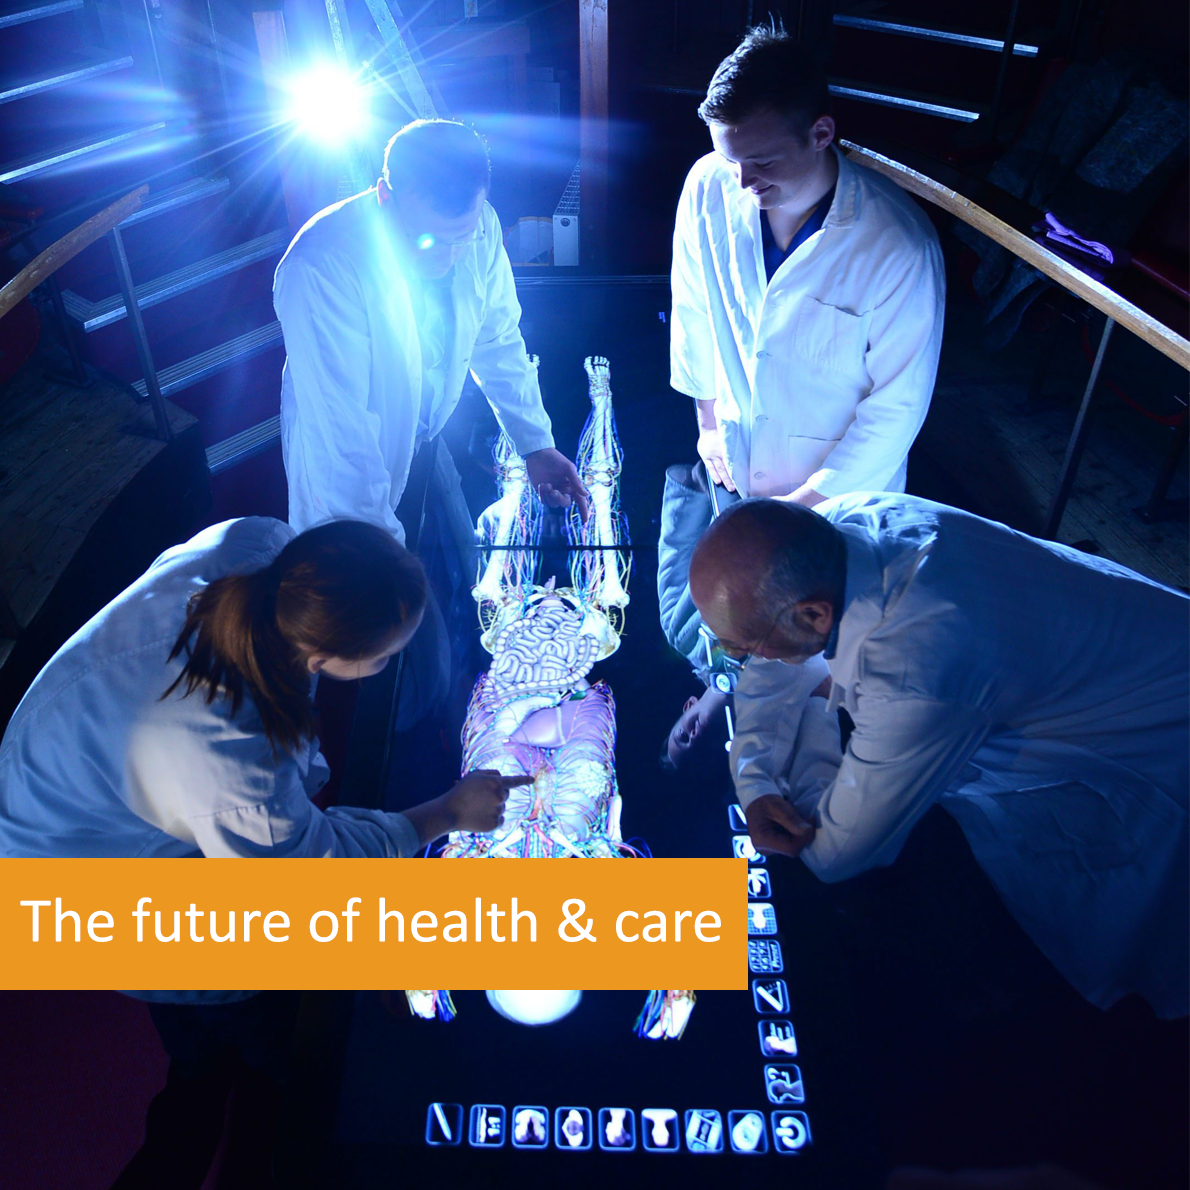 The future of health and care